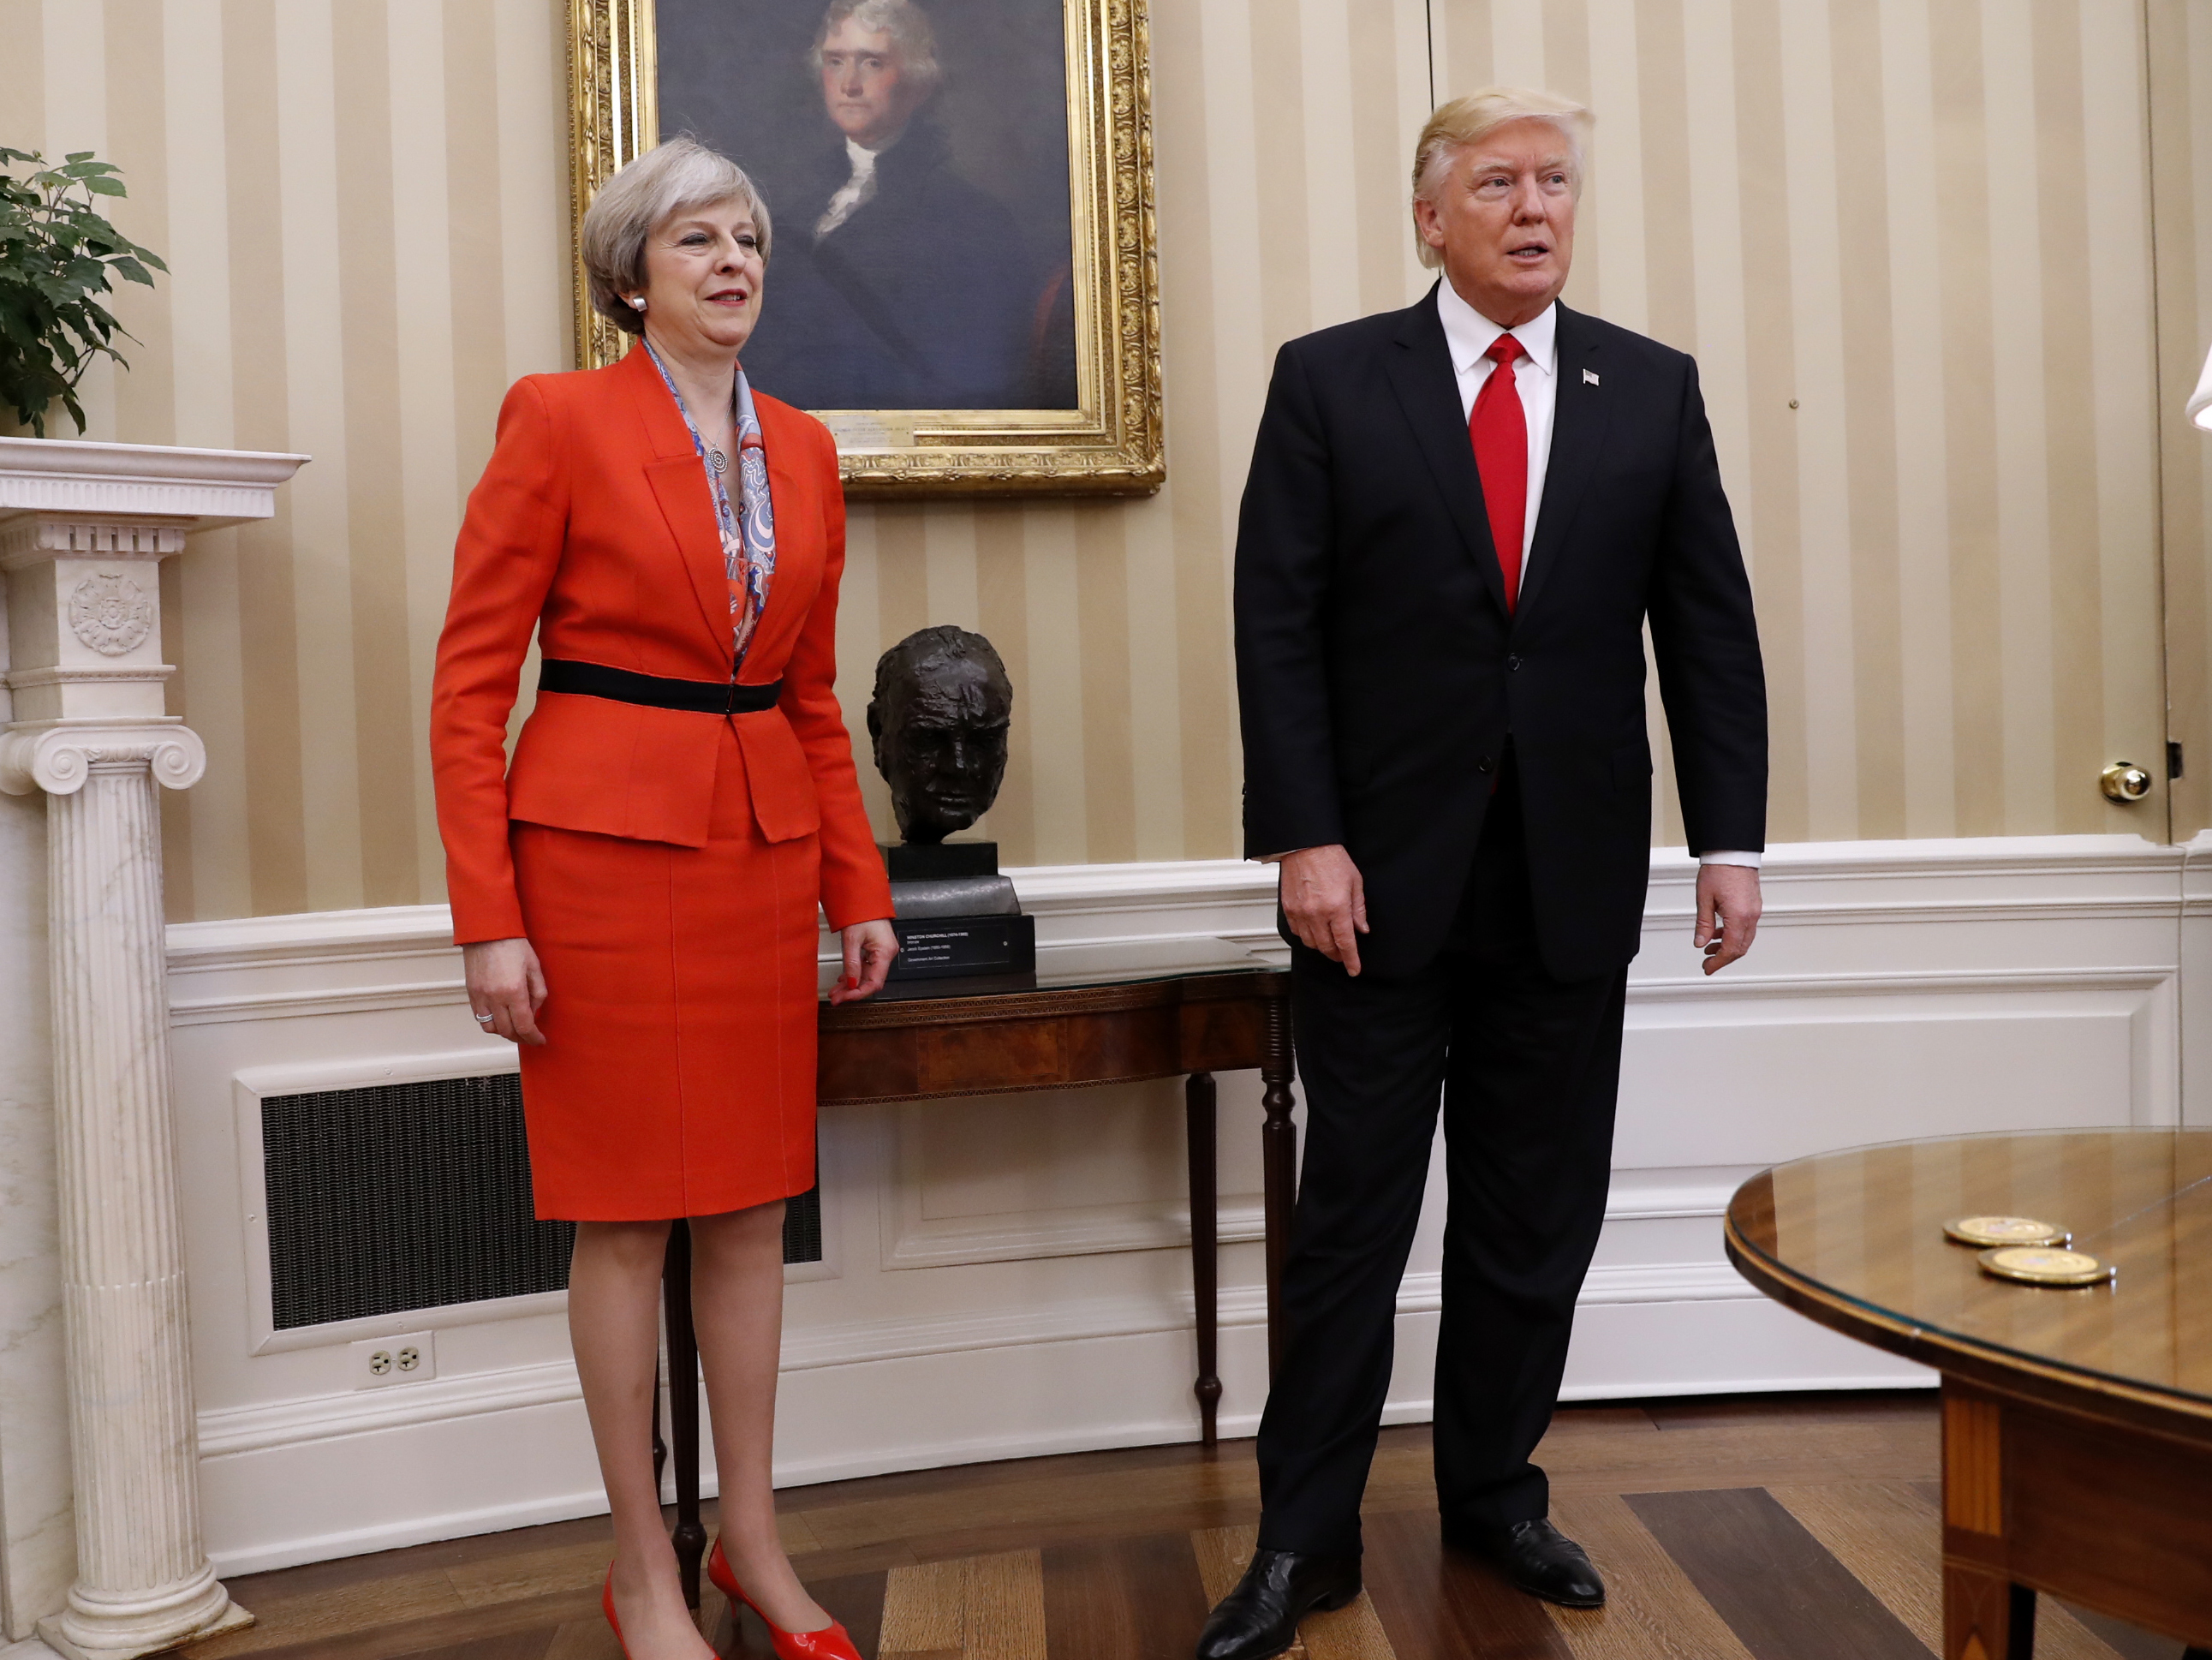 In Meeting With Trump, U.K. Prime Minister Pushes For Future Trade Deal